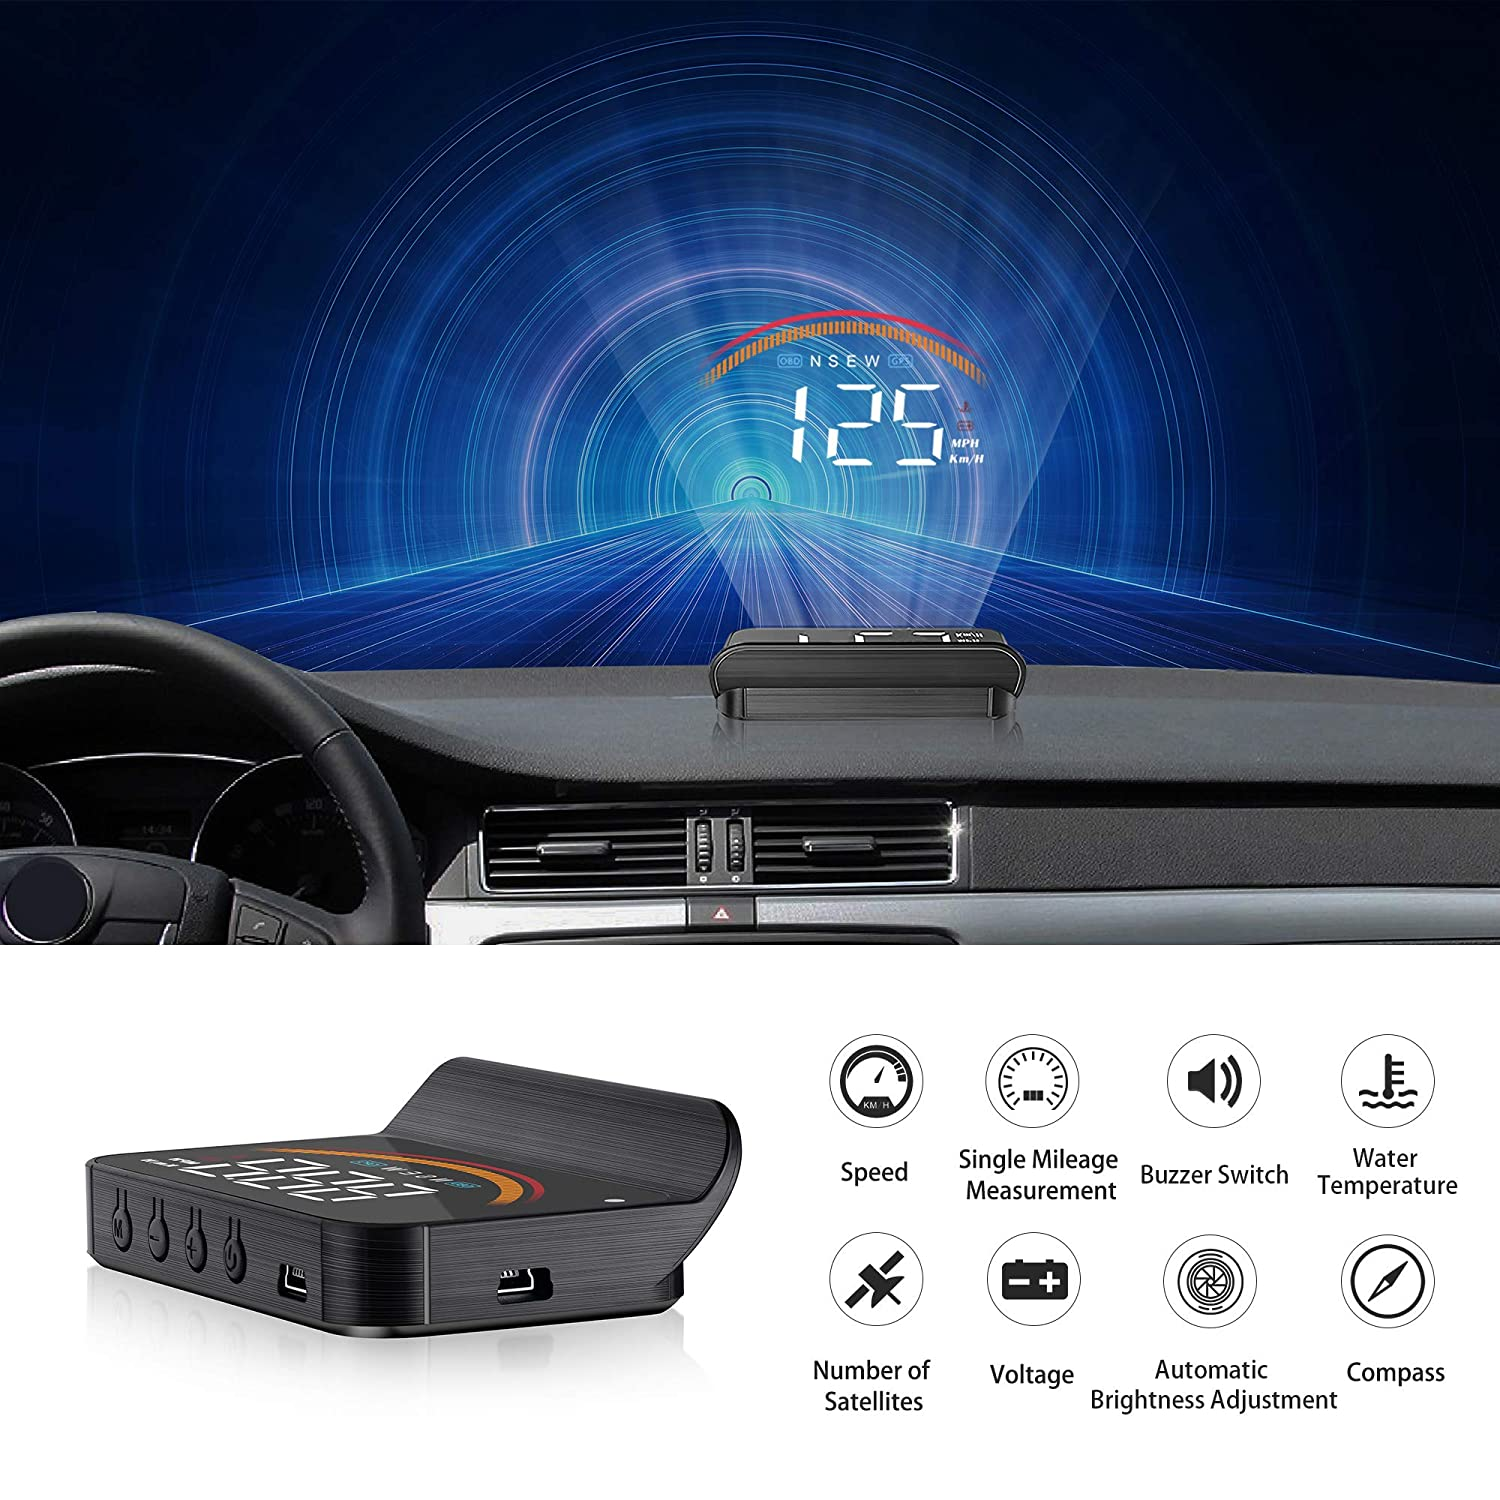 Widerlife Upgrade Version Car Universal Dual System HUD Head Up Display OBD II GPS Interface,Vehicle Speed MPH KM h,Engine RPM,OverSpeed Warning,Mileage Measurement,Water Temperature,Voltage,Compass